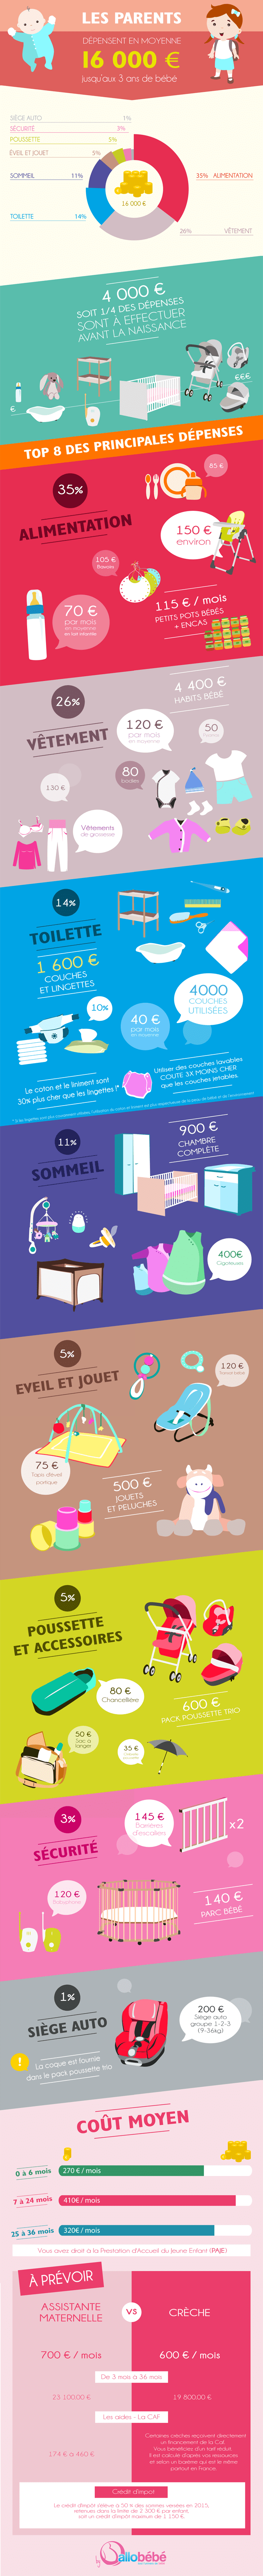 infographie-cout-bebe